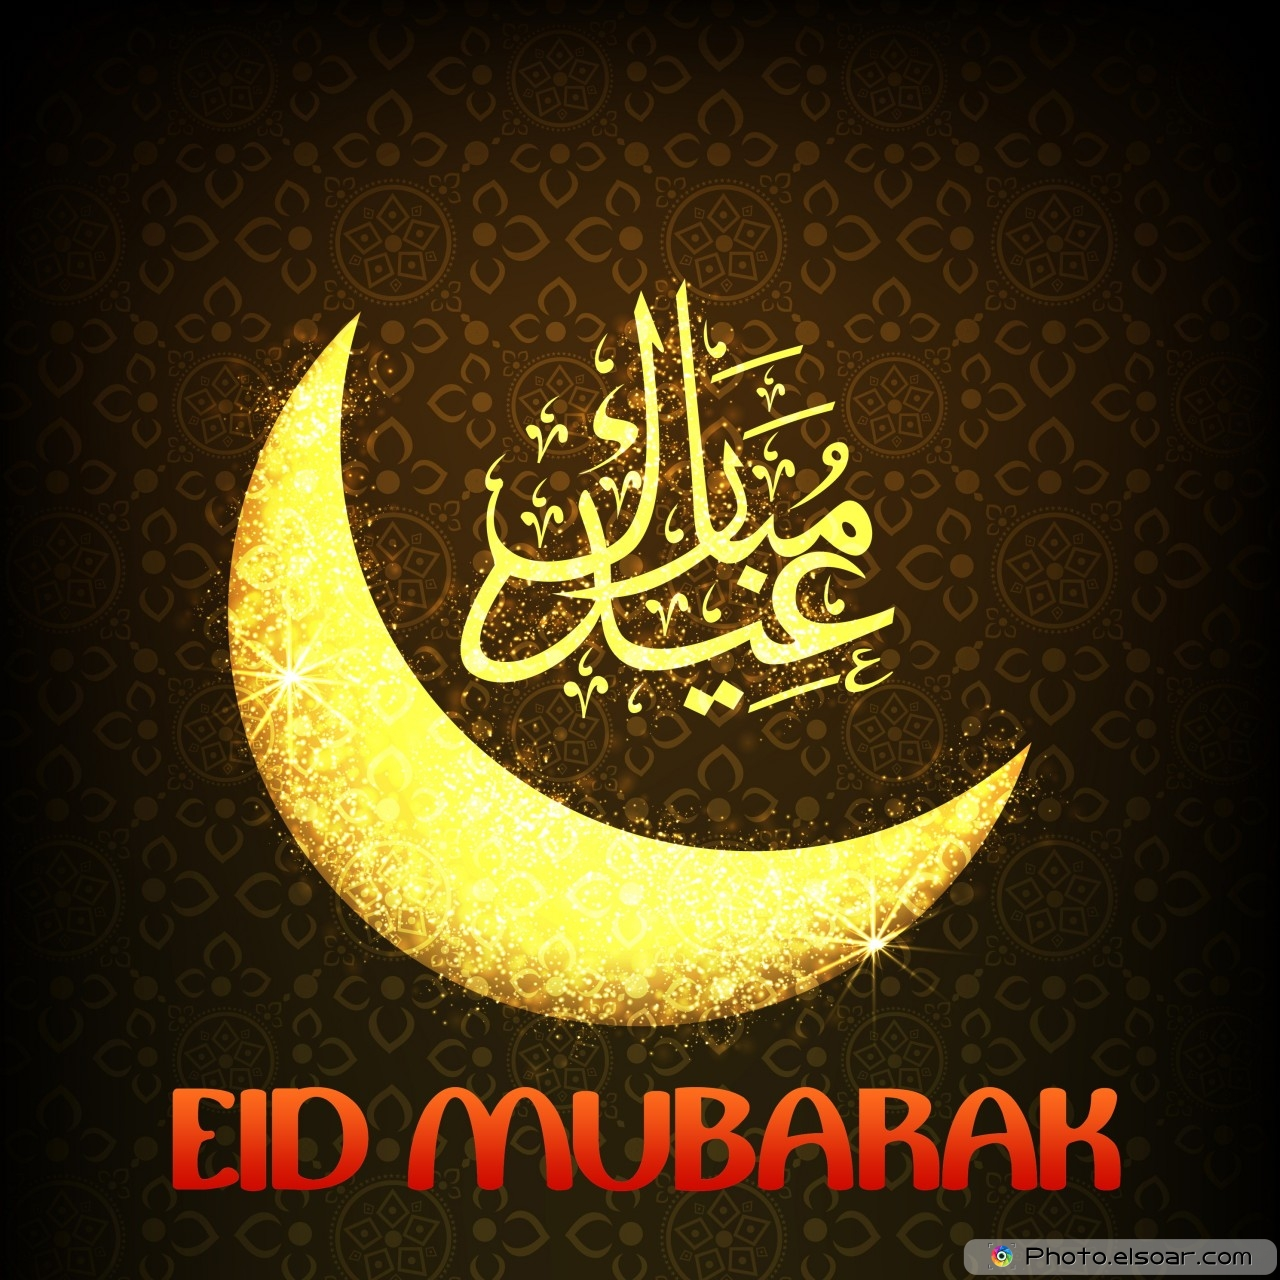 Amazing Eid Mubarak Wallpaper with crescent